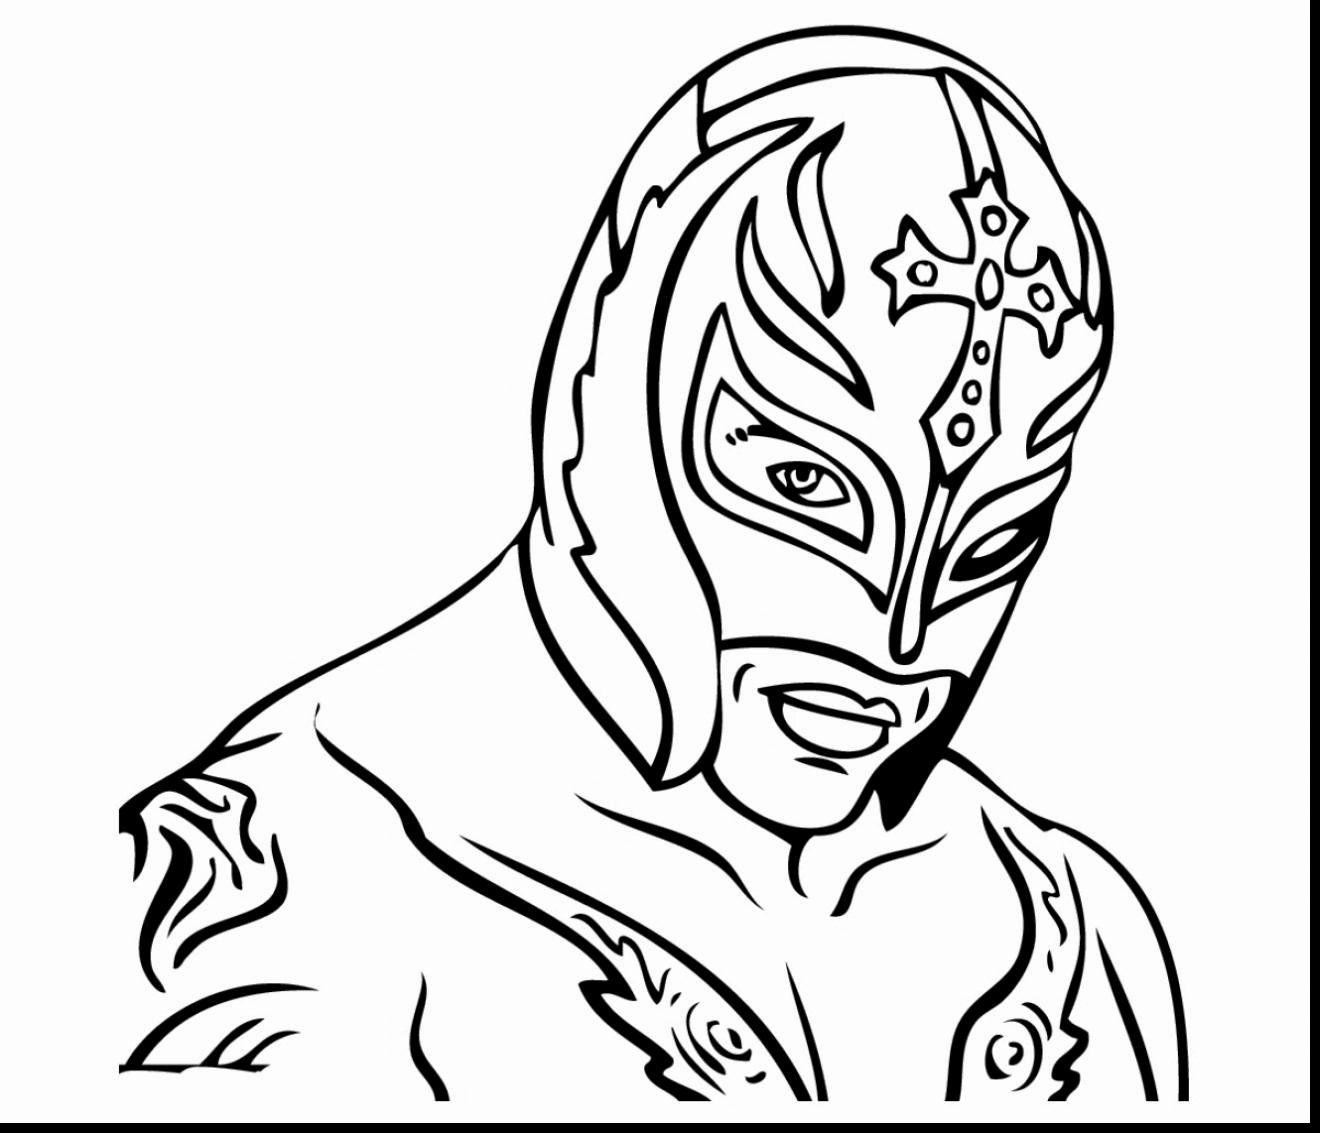 wwe coloring pages to print wwe wrestler coloring pages coloring home print to pages coloring wwe